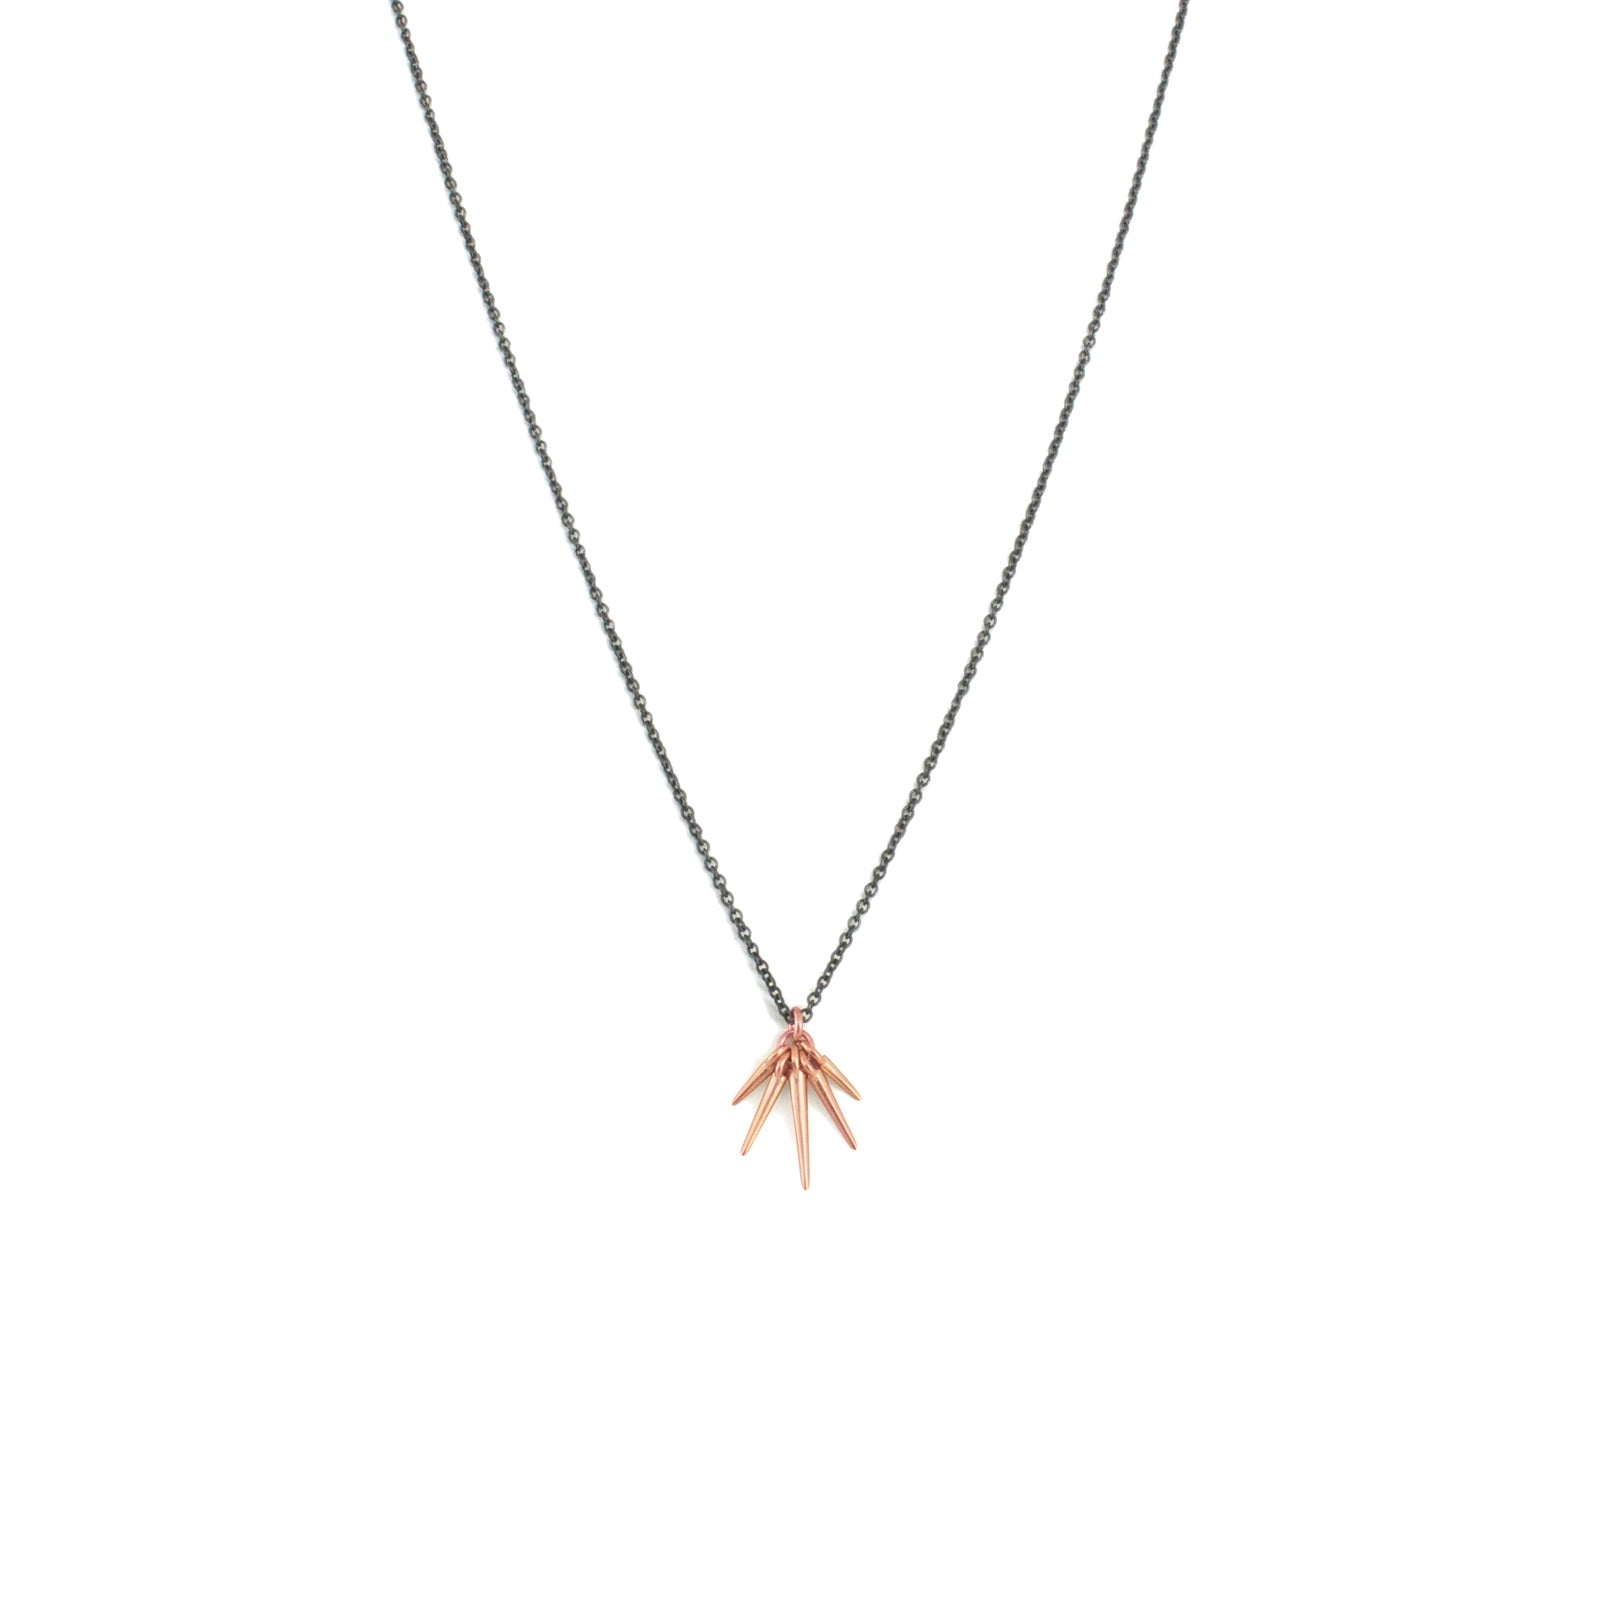 18k rose gold/oxidized silver chain / small fan points necklace